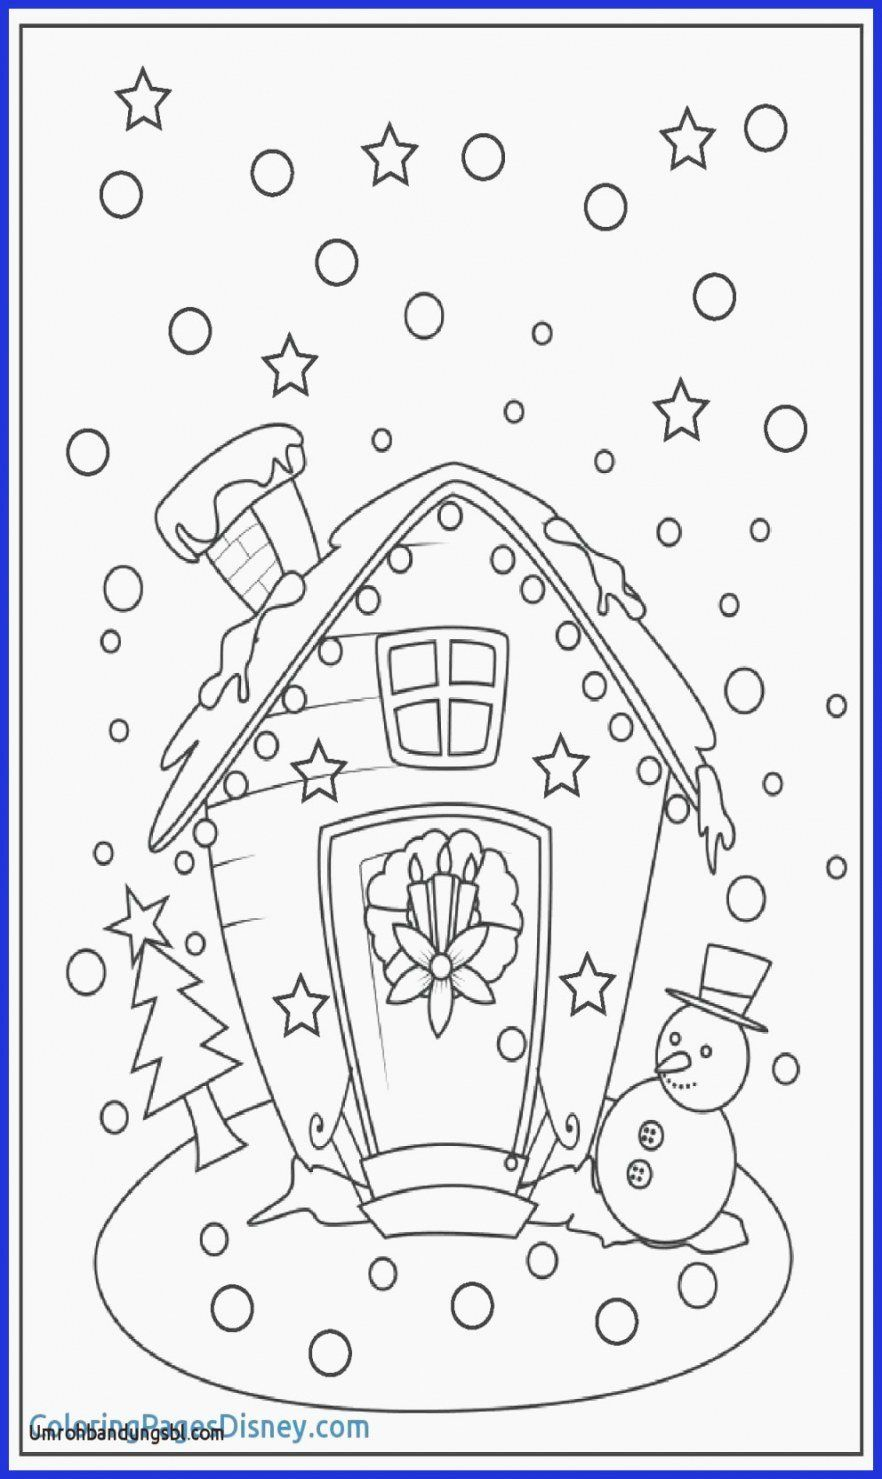 Online Coloring Book Games Luxury Lego Coloring Page Free Lego Printable Coloring Pages Best Drawing Doodle Clip Art